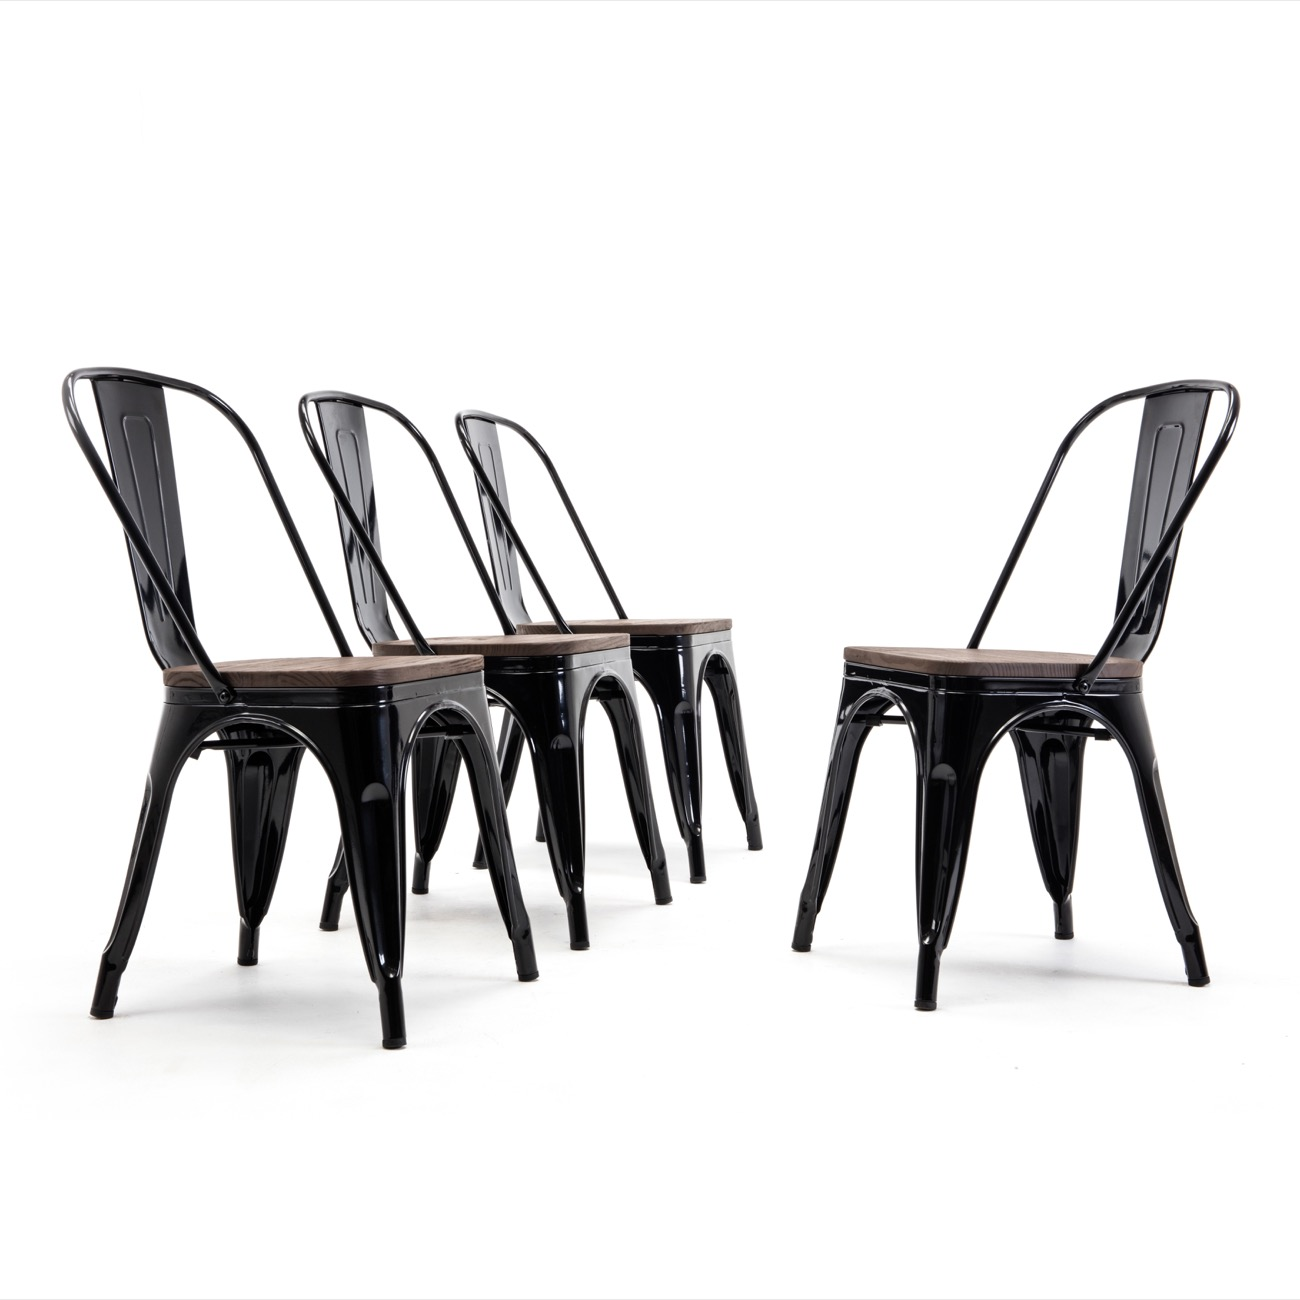 modern metal chairs contemporary club belleze style industrial stackable bistro dining set of 4 wood seat cafe bar restaurant stool walmart com